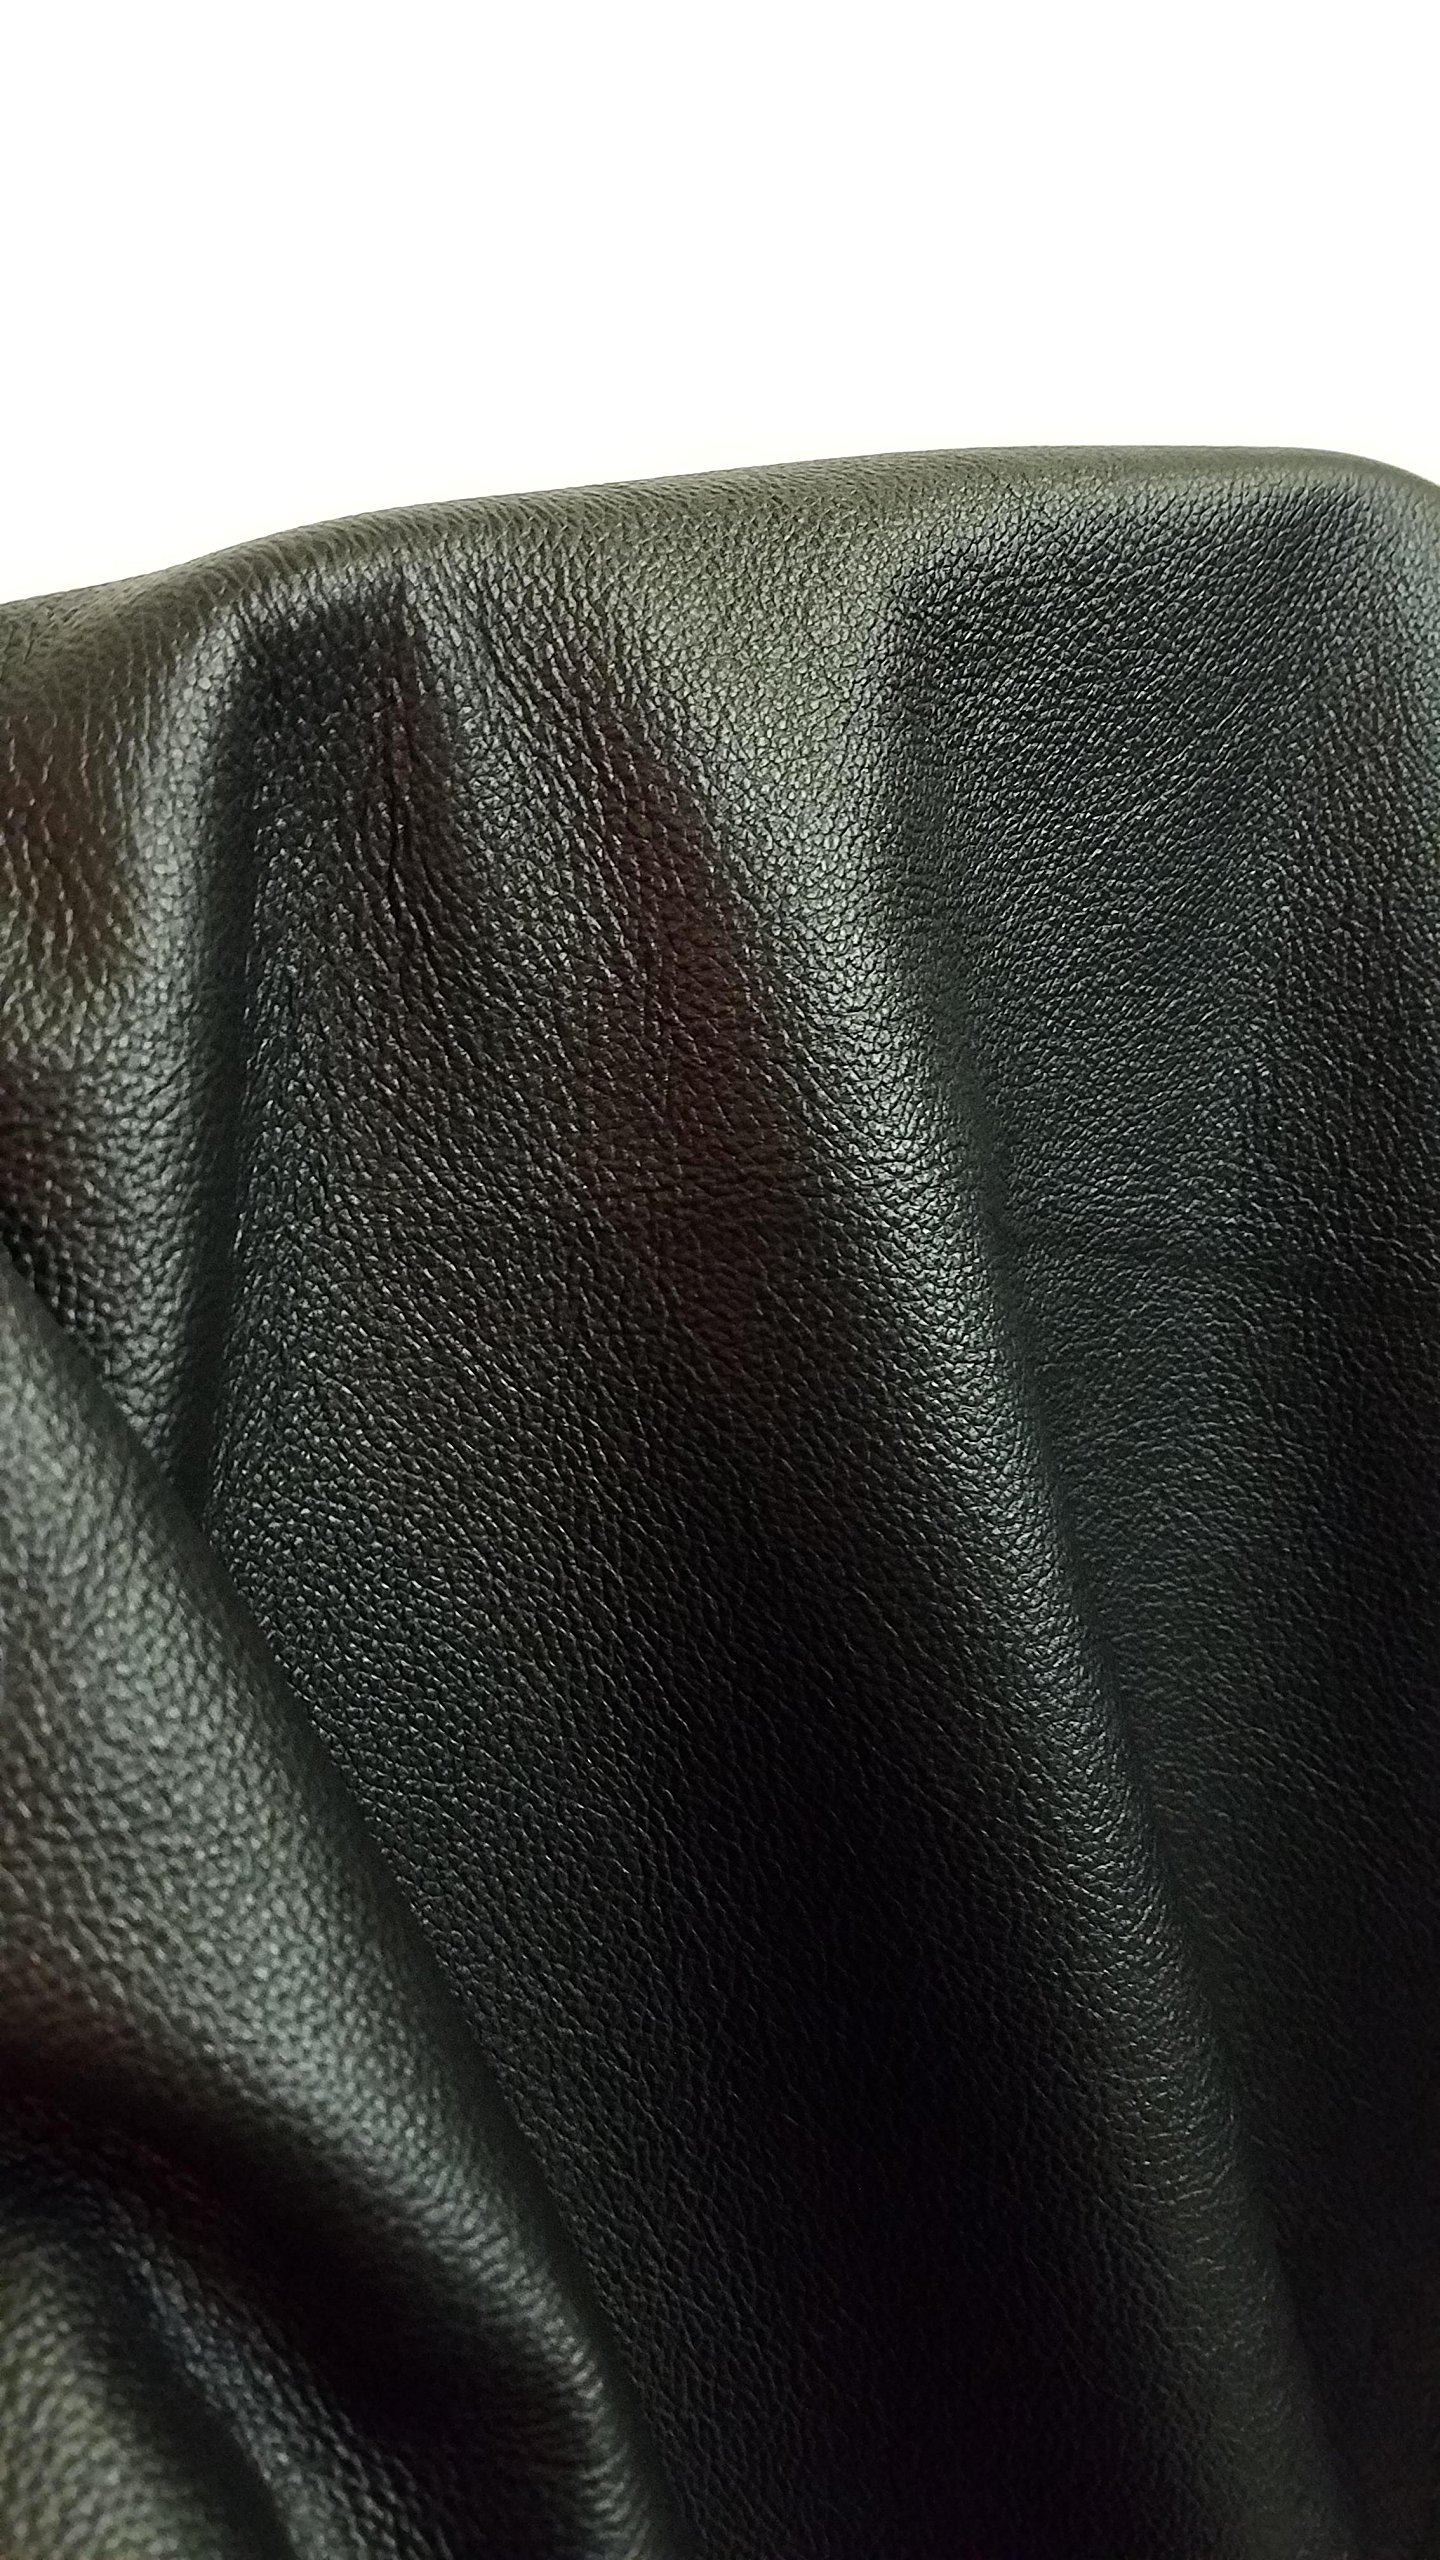 NAT Leathers Black Vintage Soft Upholstery Chap Cowhide 2.5 oz Genuine Leather Hide Skin 22 to 24 Square Feet (33''x55'') Produced in Italy (Black)